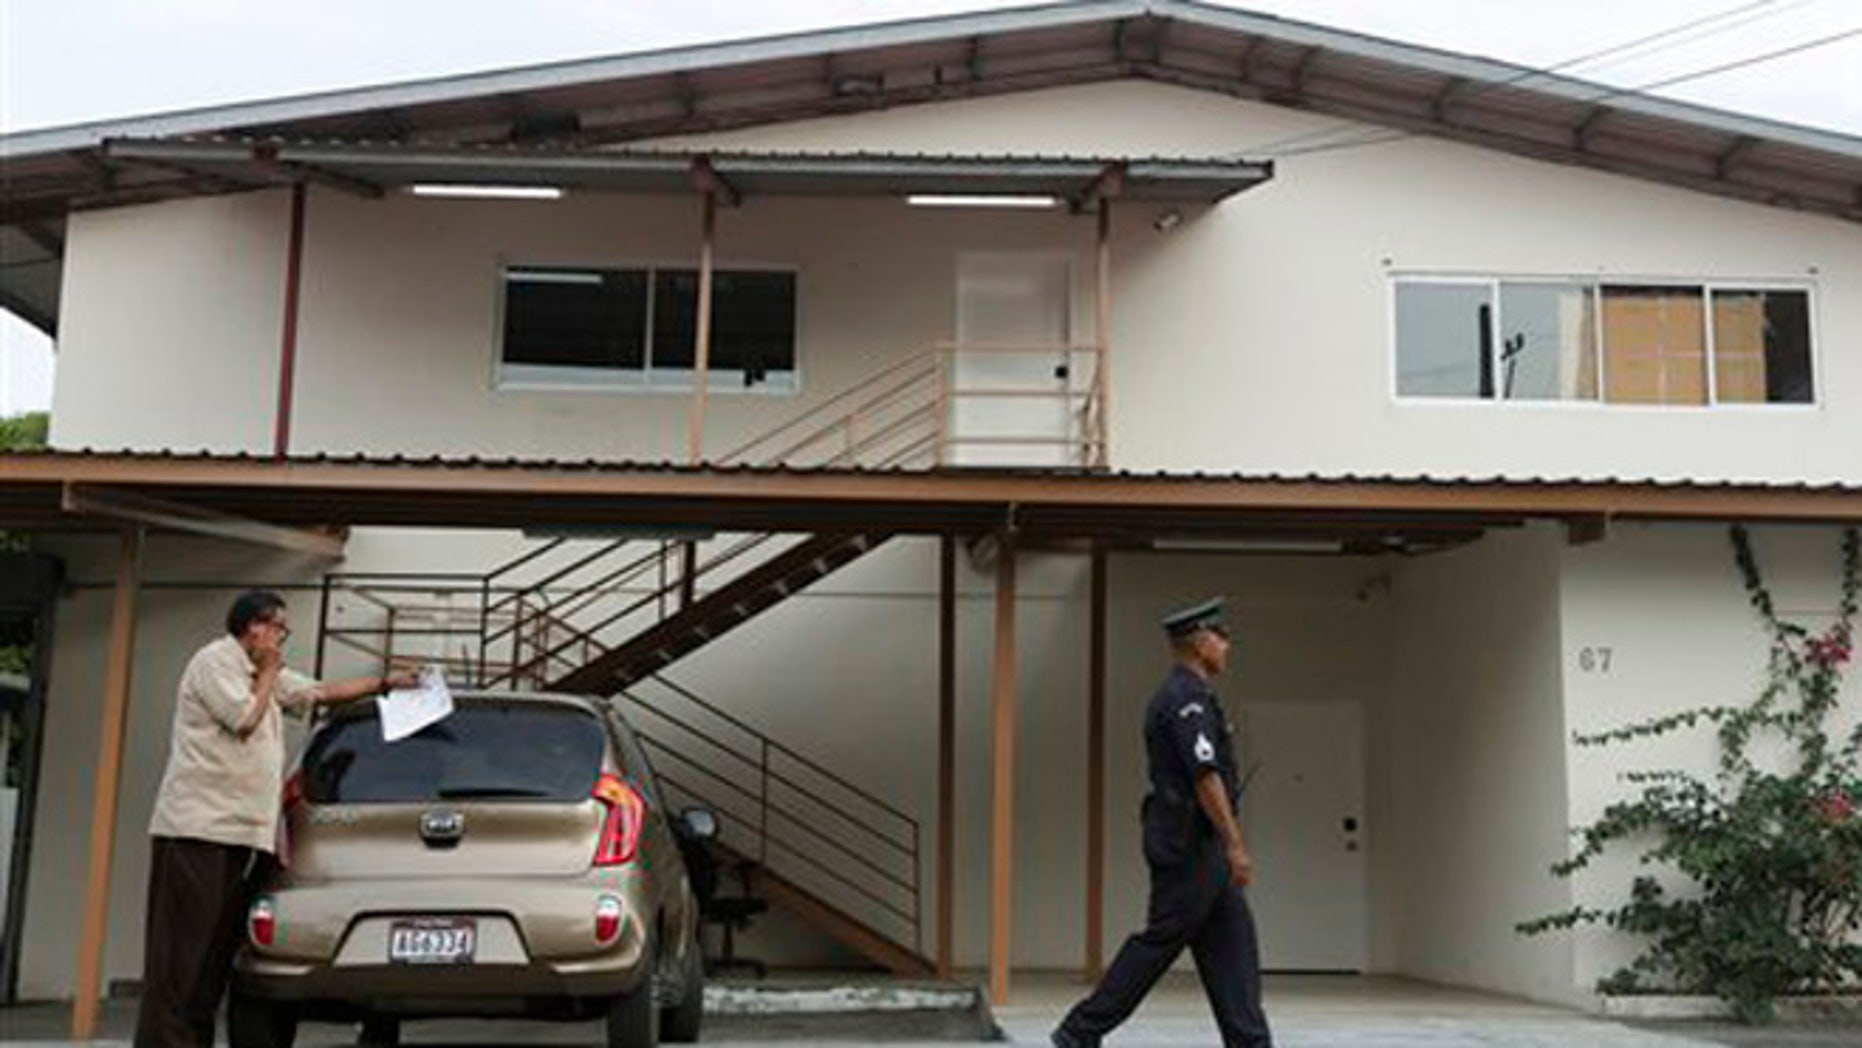 A Panamanian police officer and private security guard stand outside a warehouse used by the Mossack-Fonseca law firm, that was raided by prosecutors, in Panama City, Friday, April 22, 2016. A week before prosecutors had wrapped up their search of the Mossack Fonseca law firm looking for evidence of any illegal activity in the company at the center of a document leak that revealed details of offshore financial accounts.(AP Photo/Arnulfo Franco)